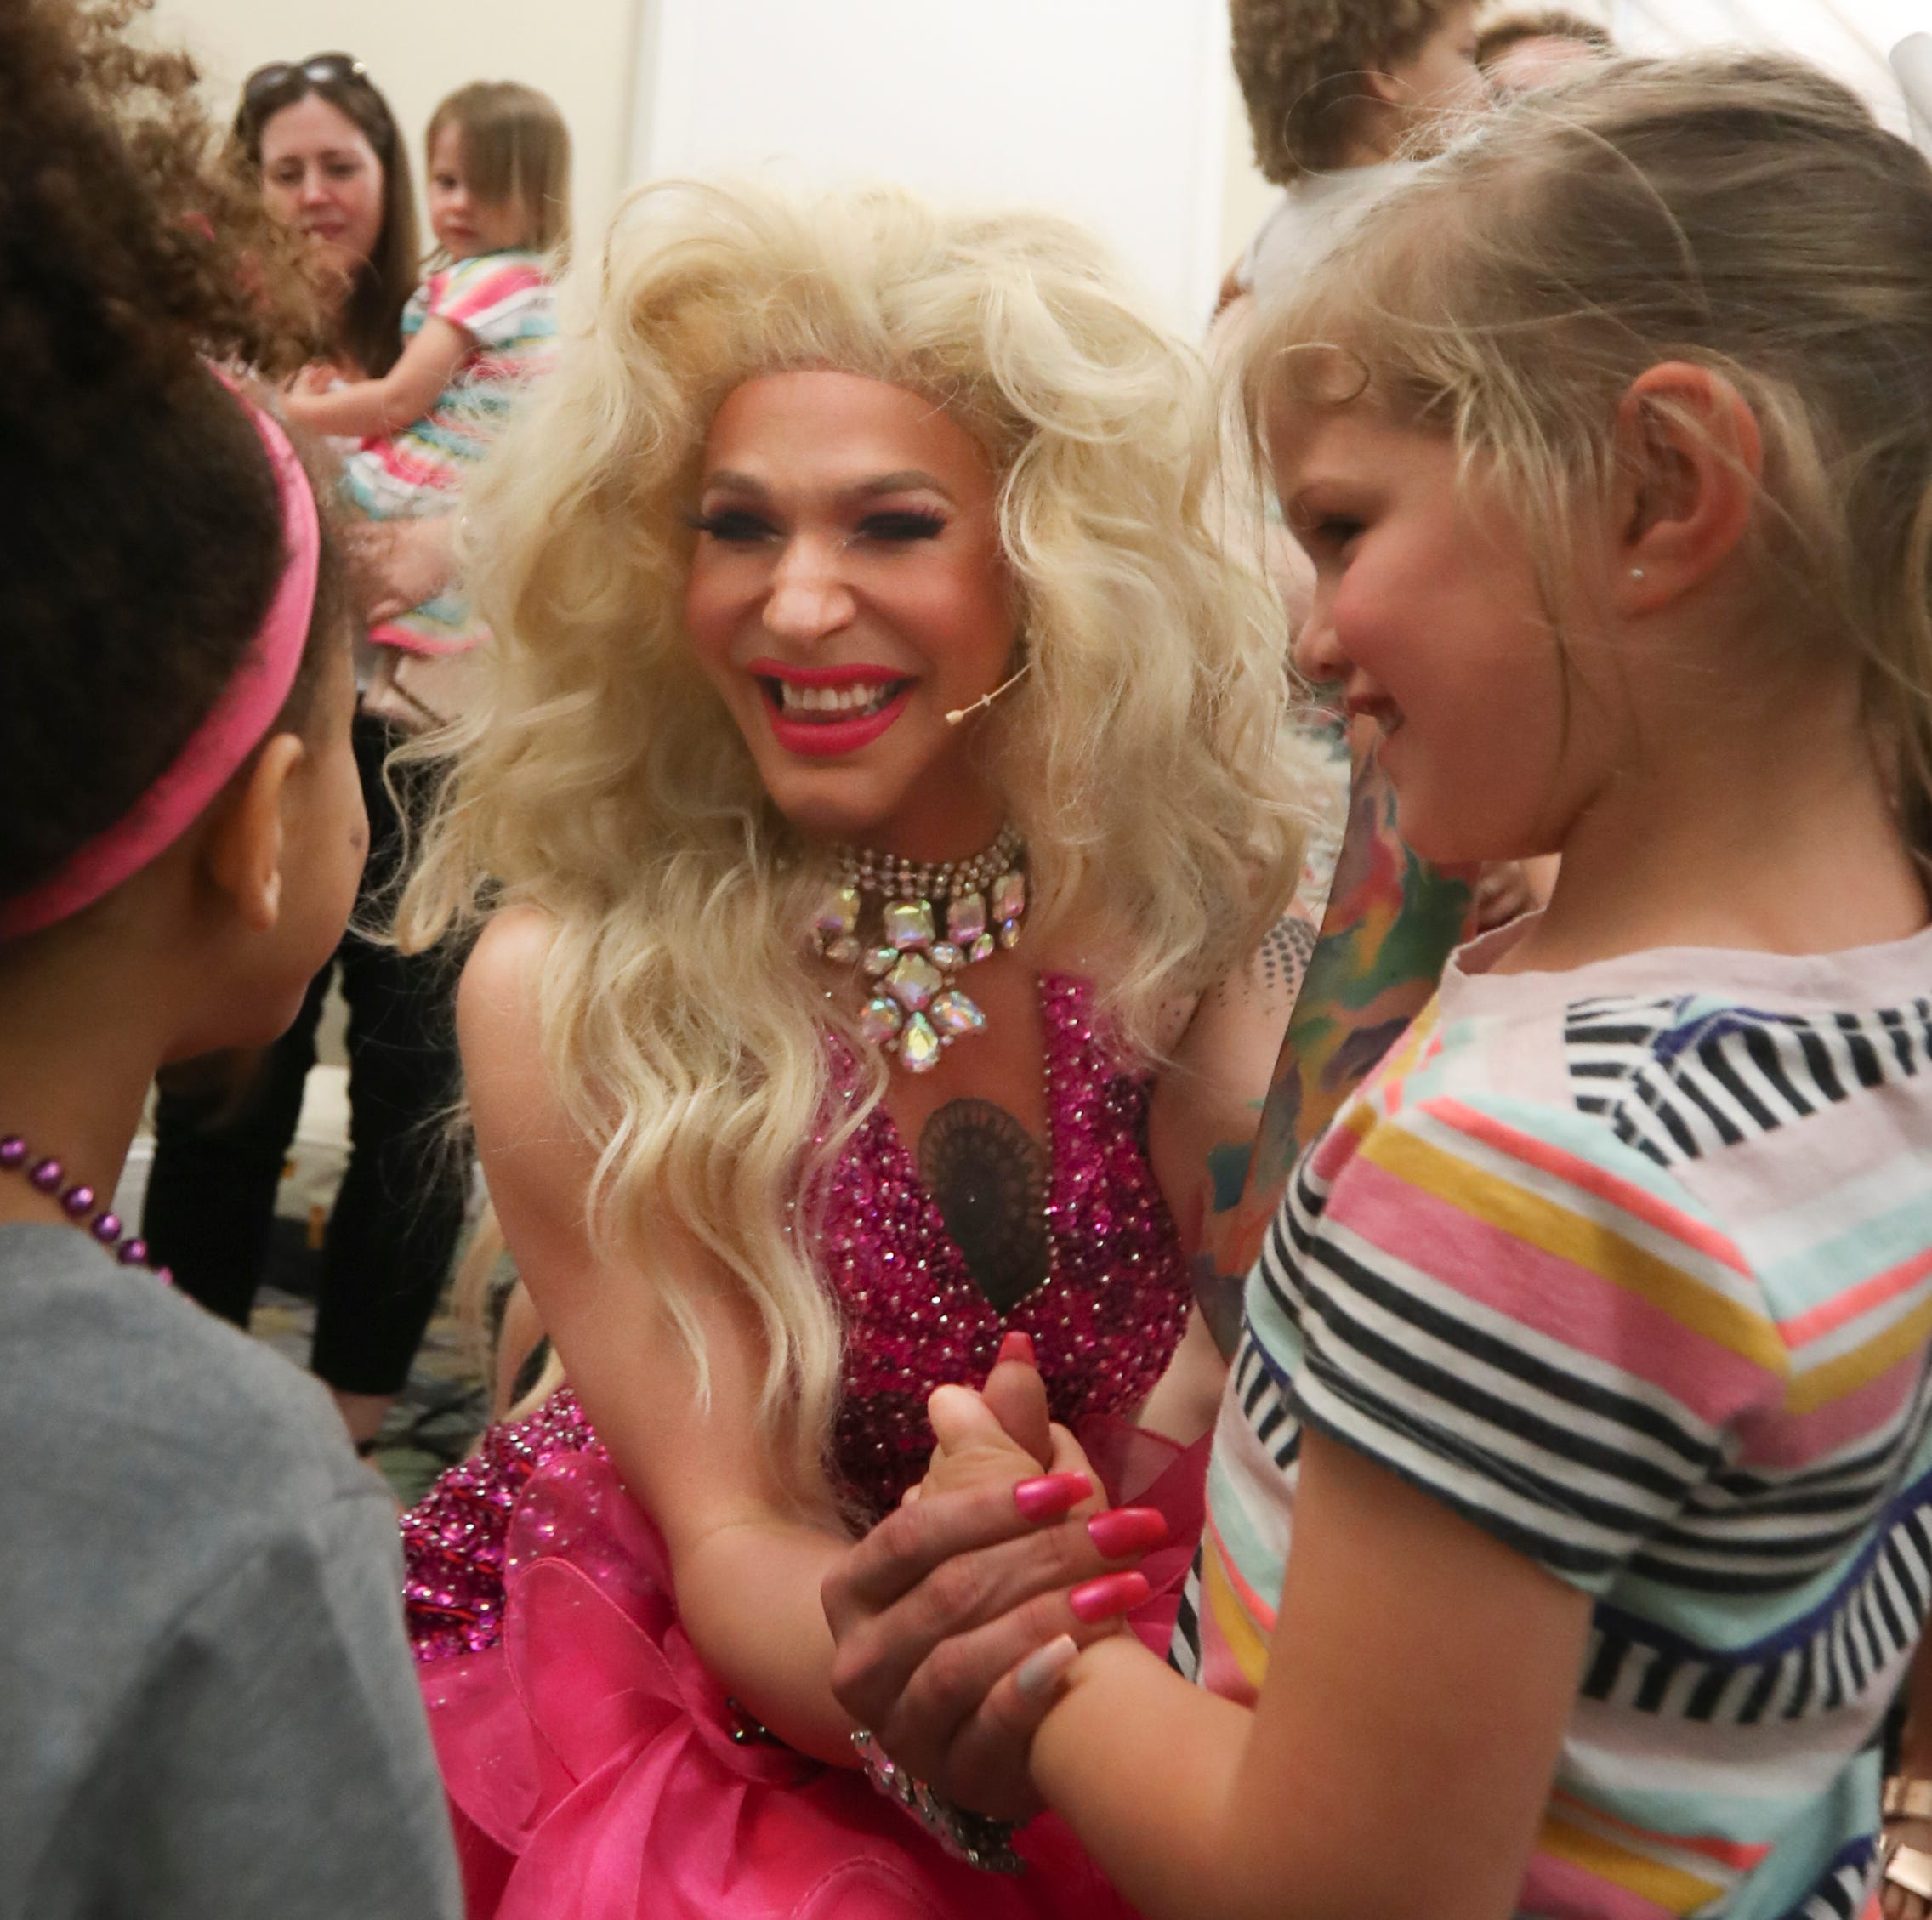 Drag Queen Storytime: It's foolish to bring kids into the sexual world of adults